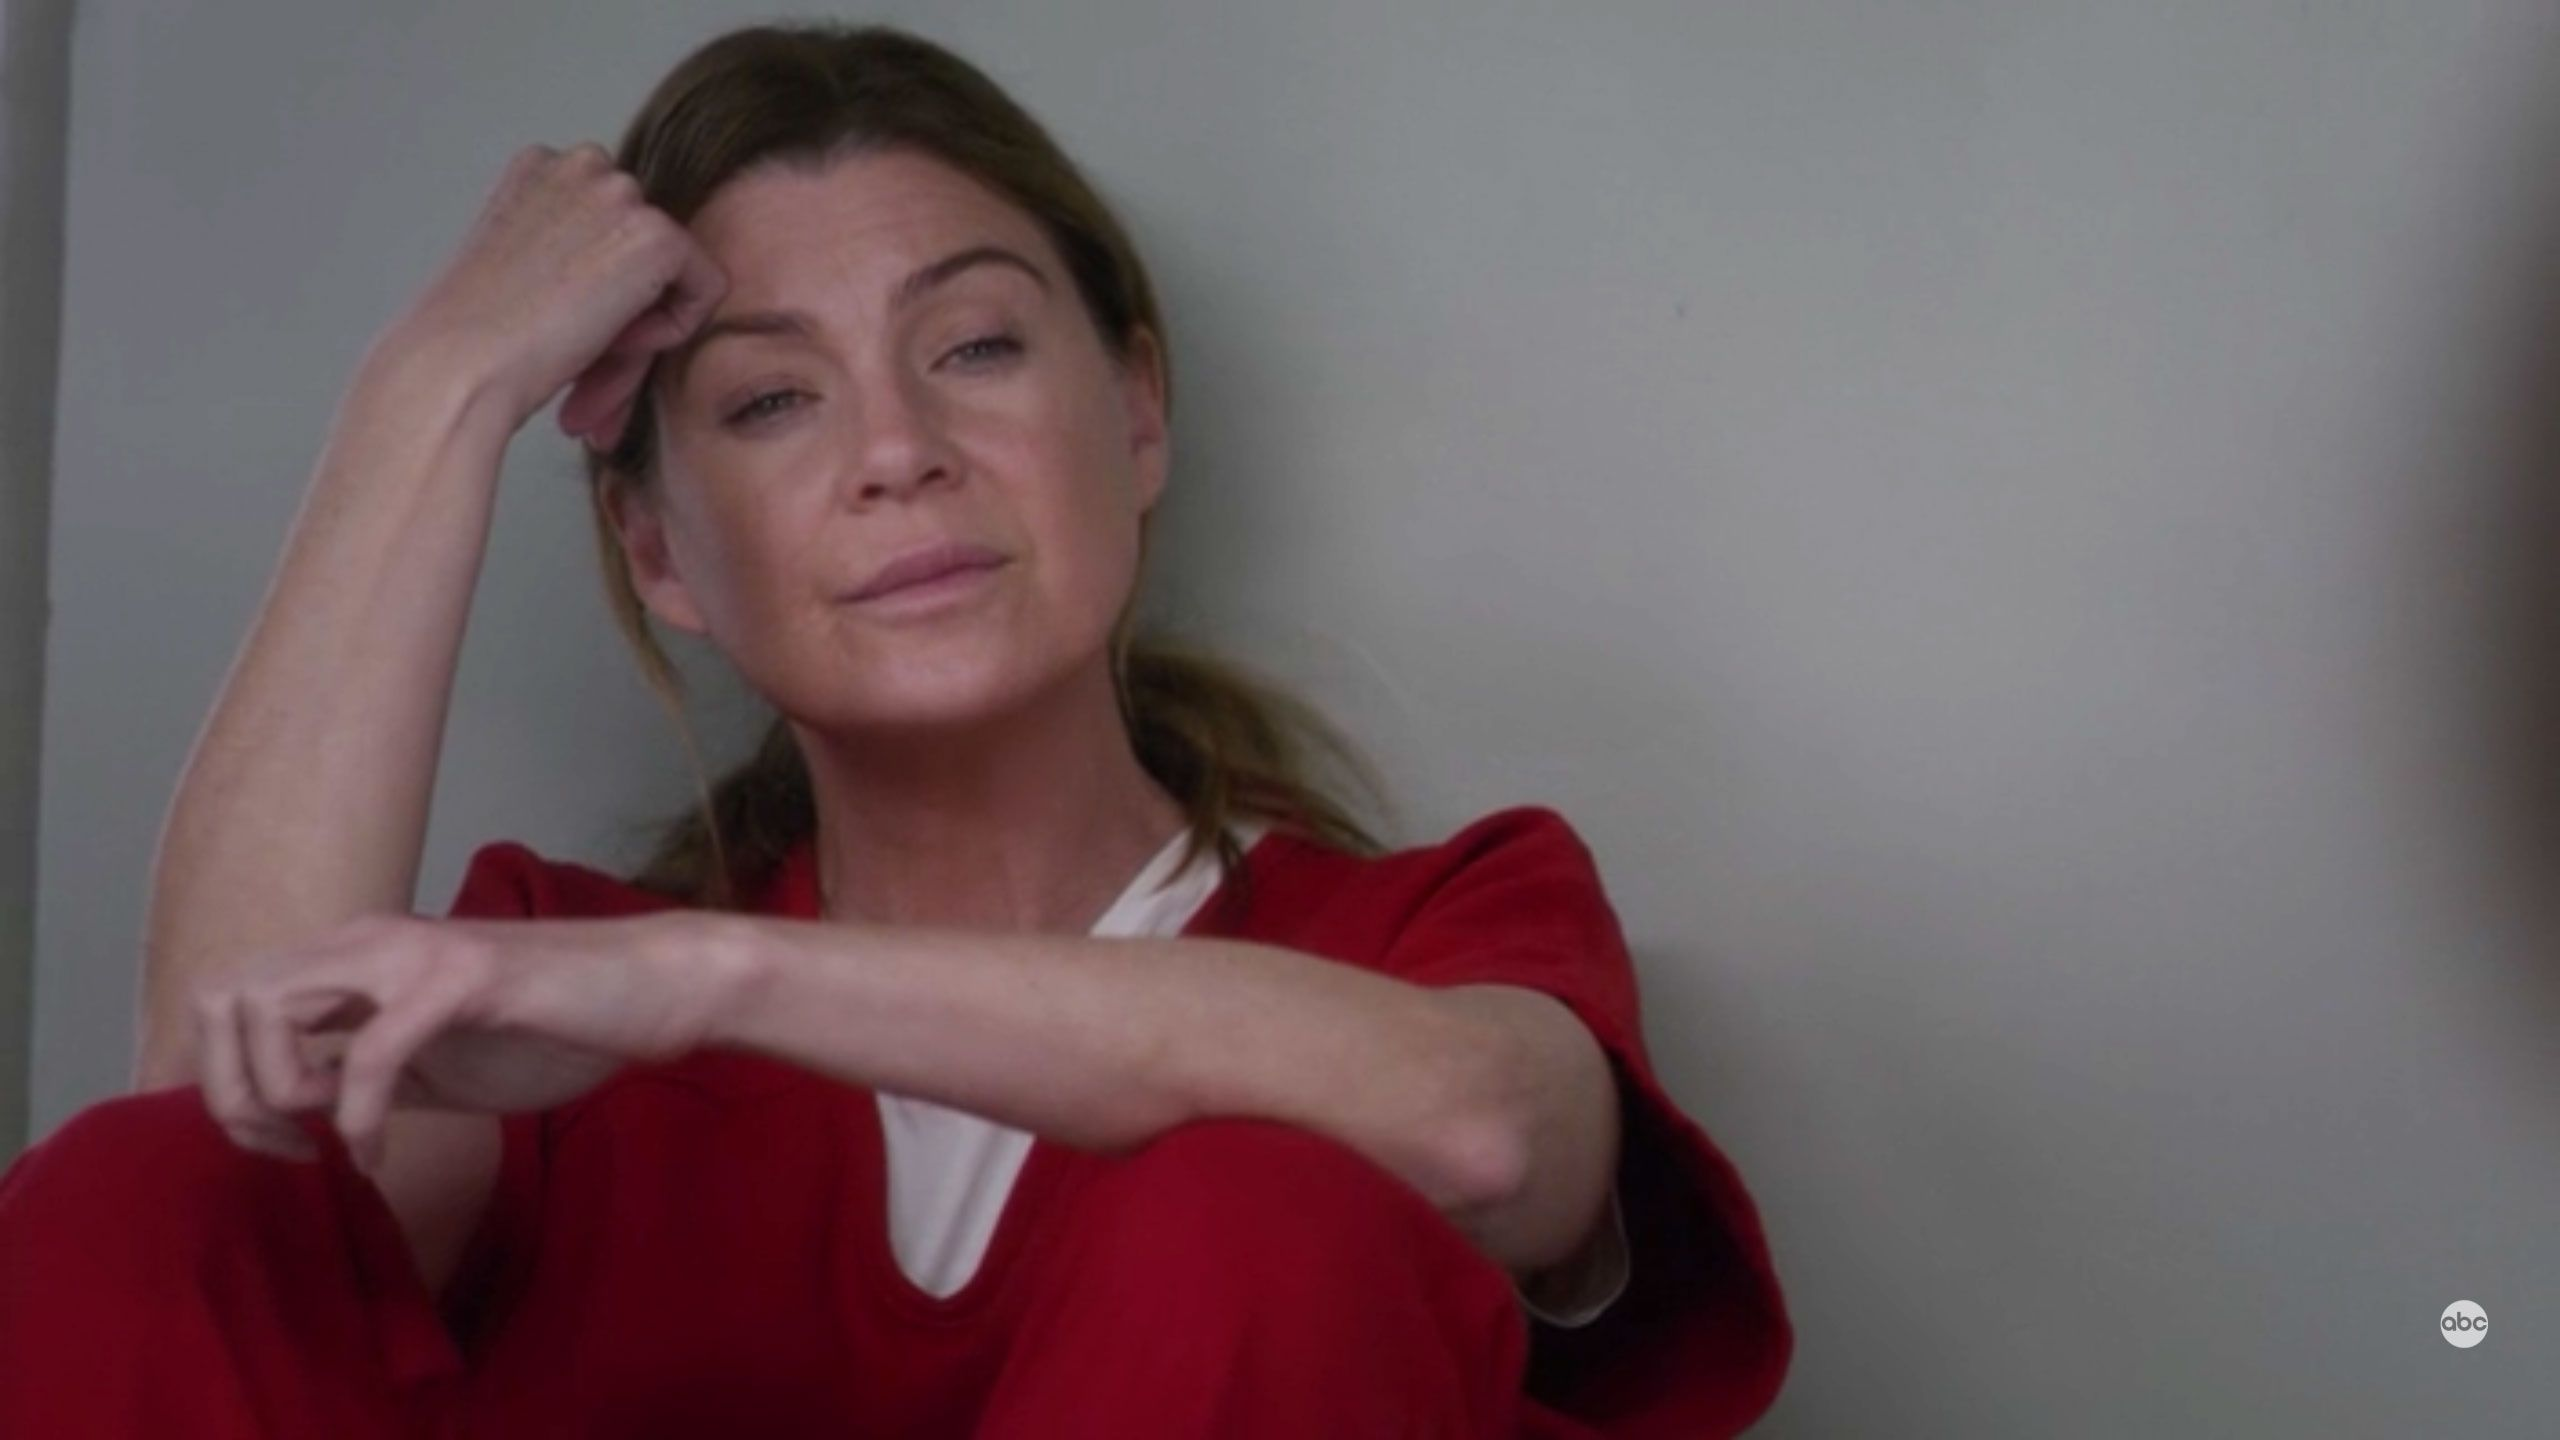 'Grey's Anatomy' Fans Think Meredith's Prison Cellmate Might Come Back to Haunt Her in the Future